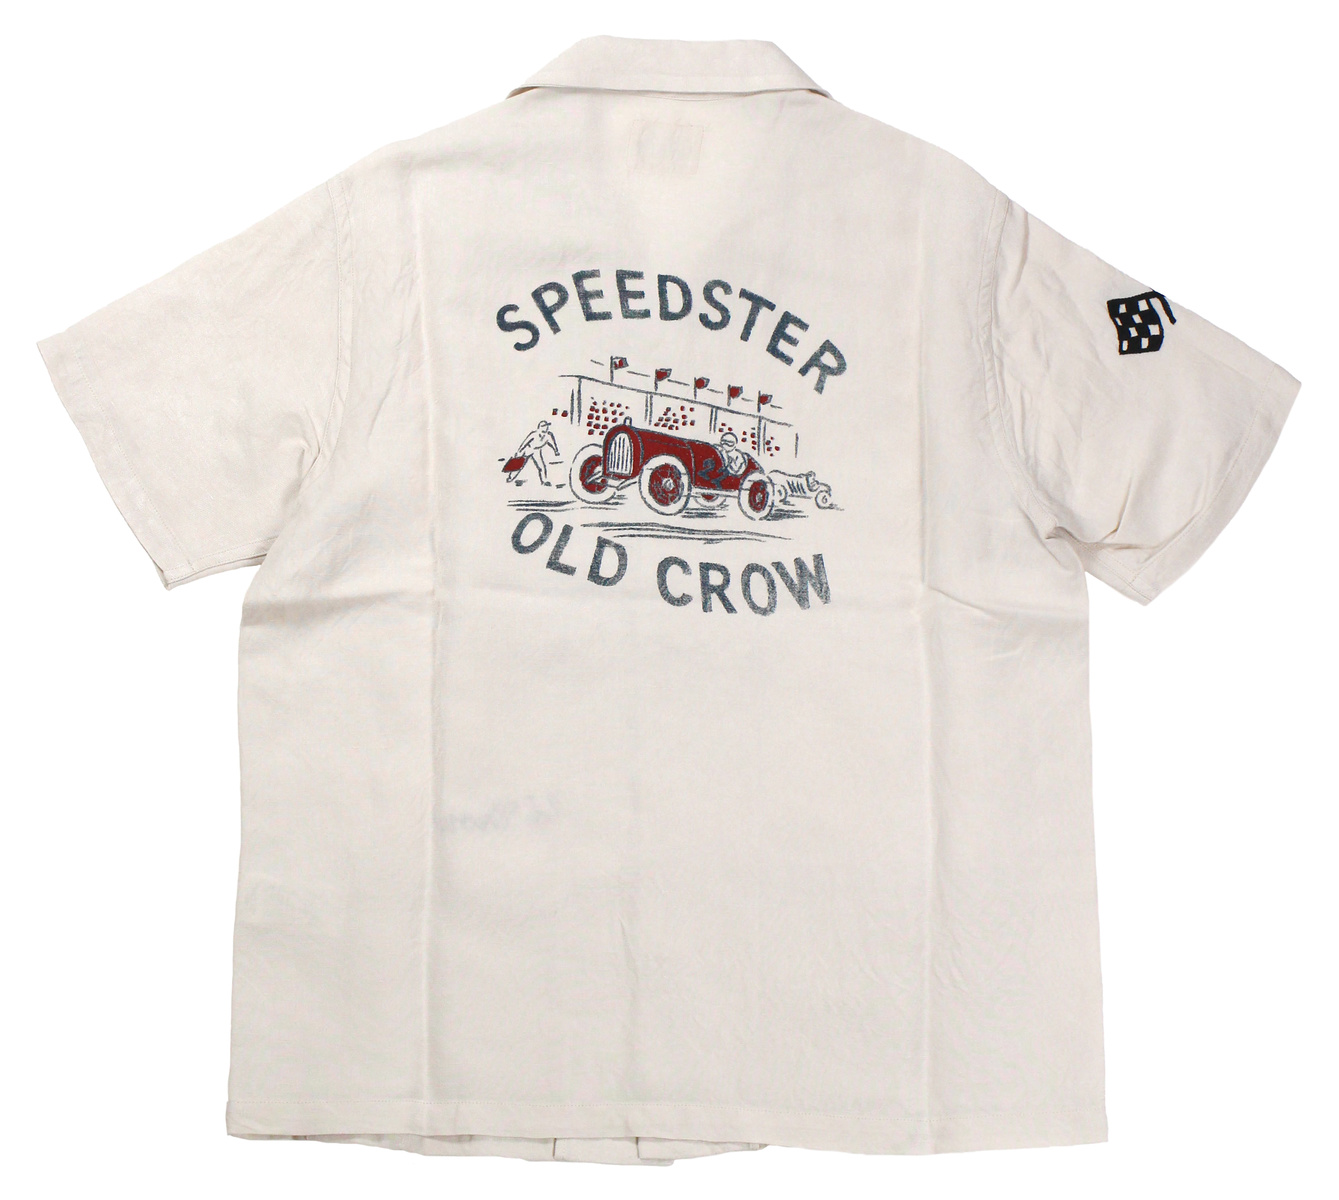 OLD CROW [-SPEEDSTER - S/S SHIRTS- IVORY size.S,M,L,XL]